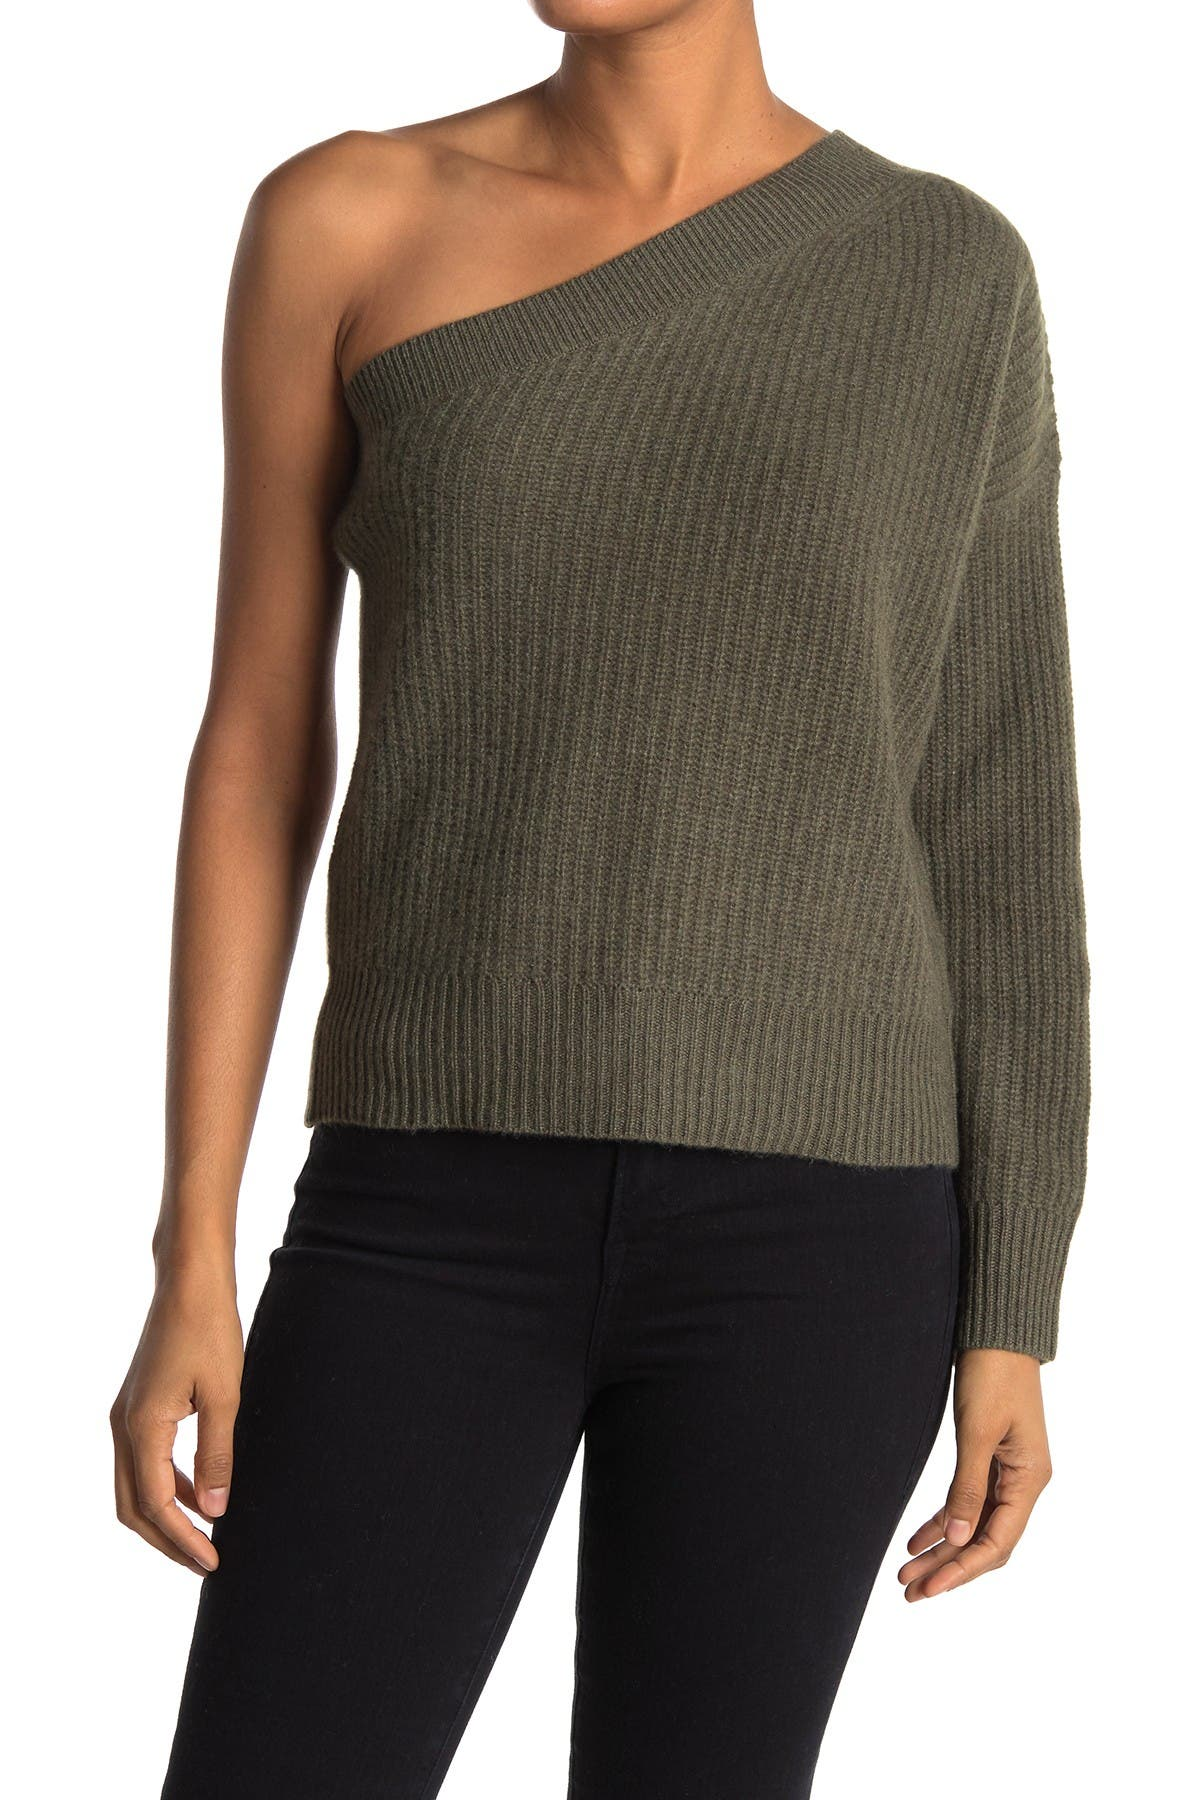 Image of 360 Cashmere Lena One Shoulder Cashmere Sweater